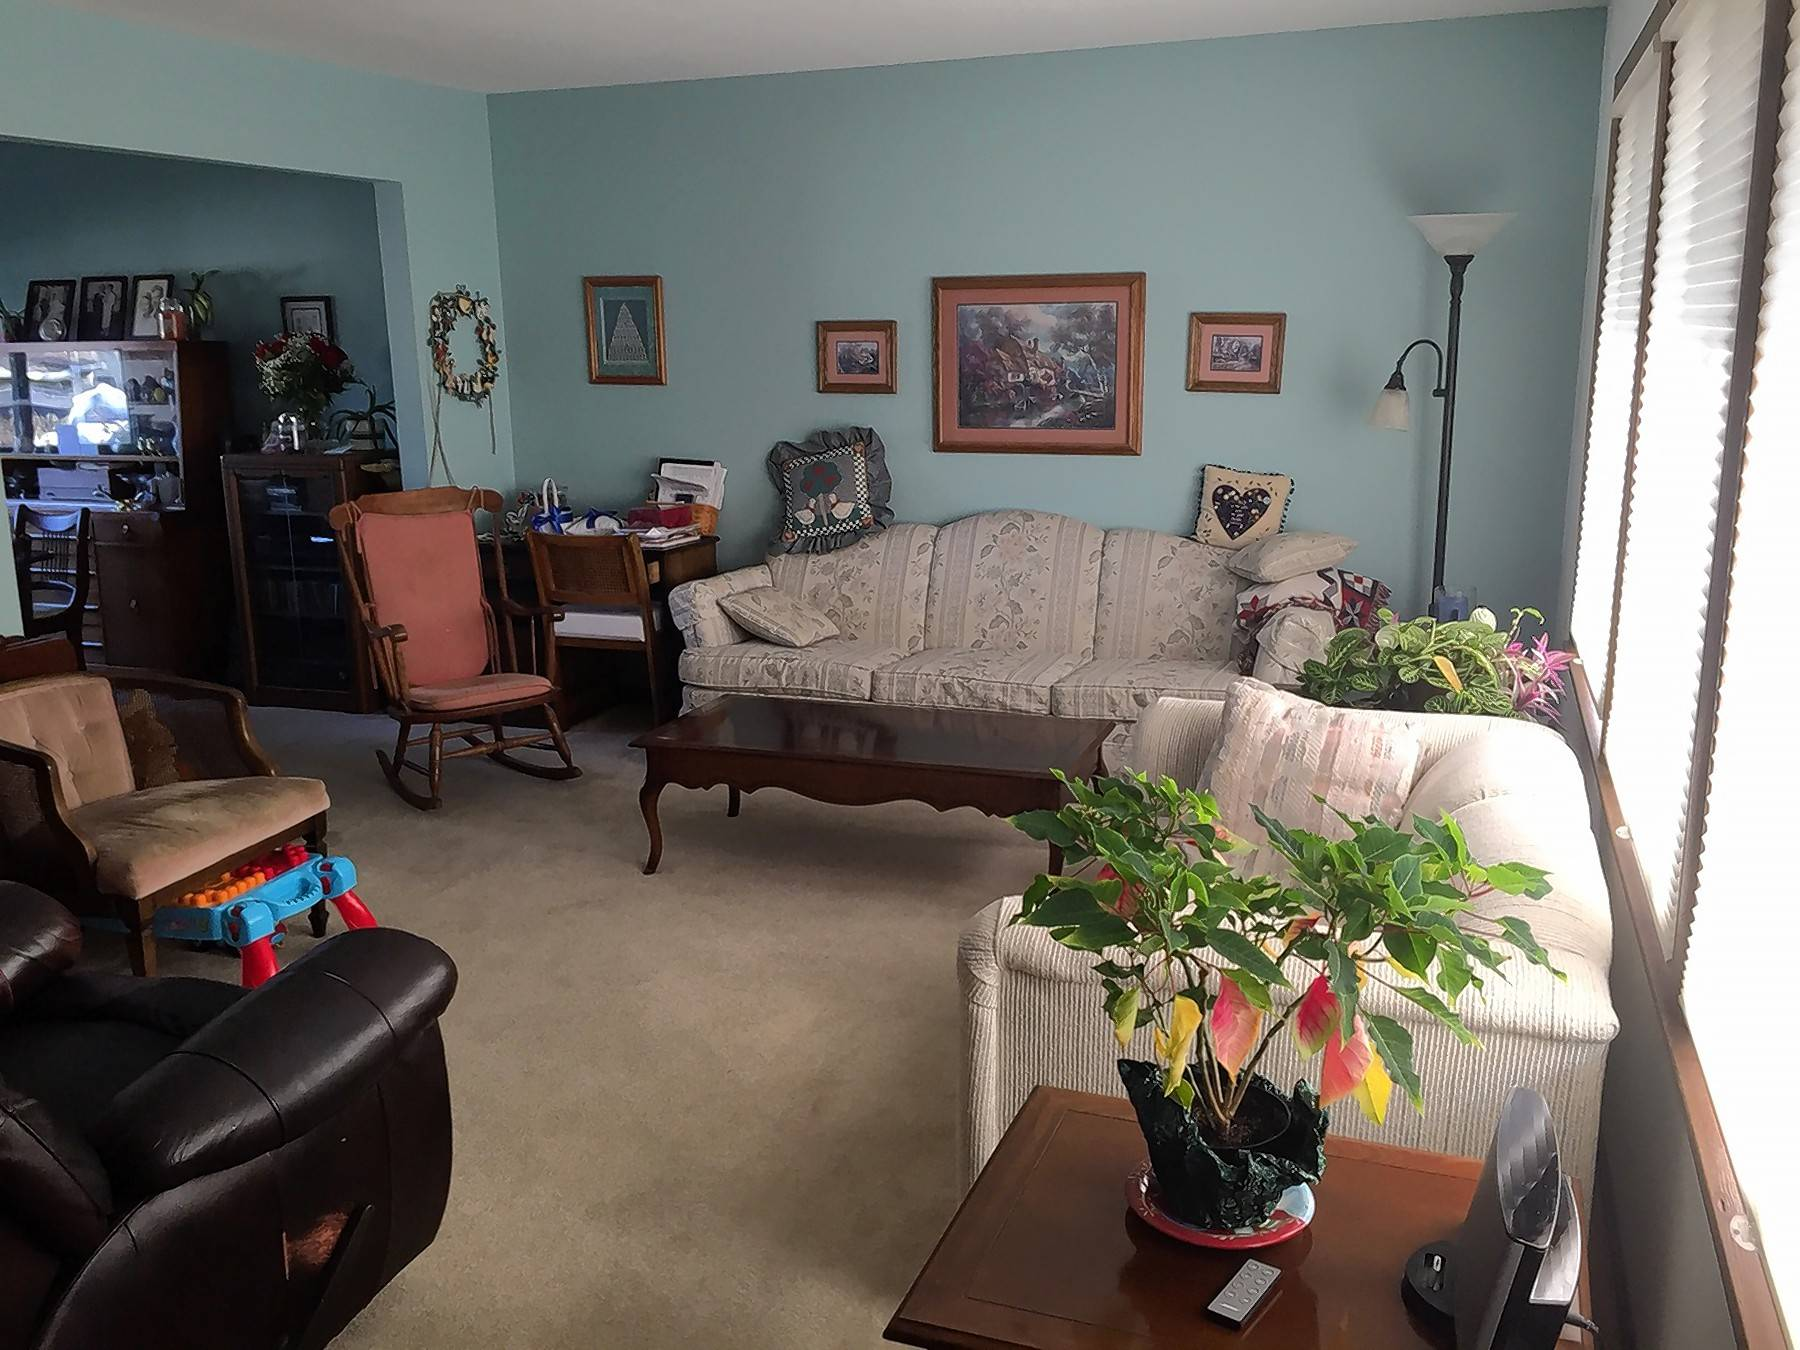 Cindy Lange of Elgin says her living room houses a collection with no matching pieces of furniture.